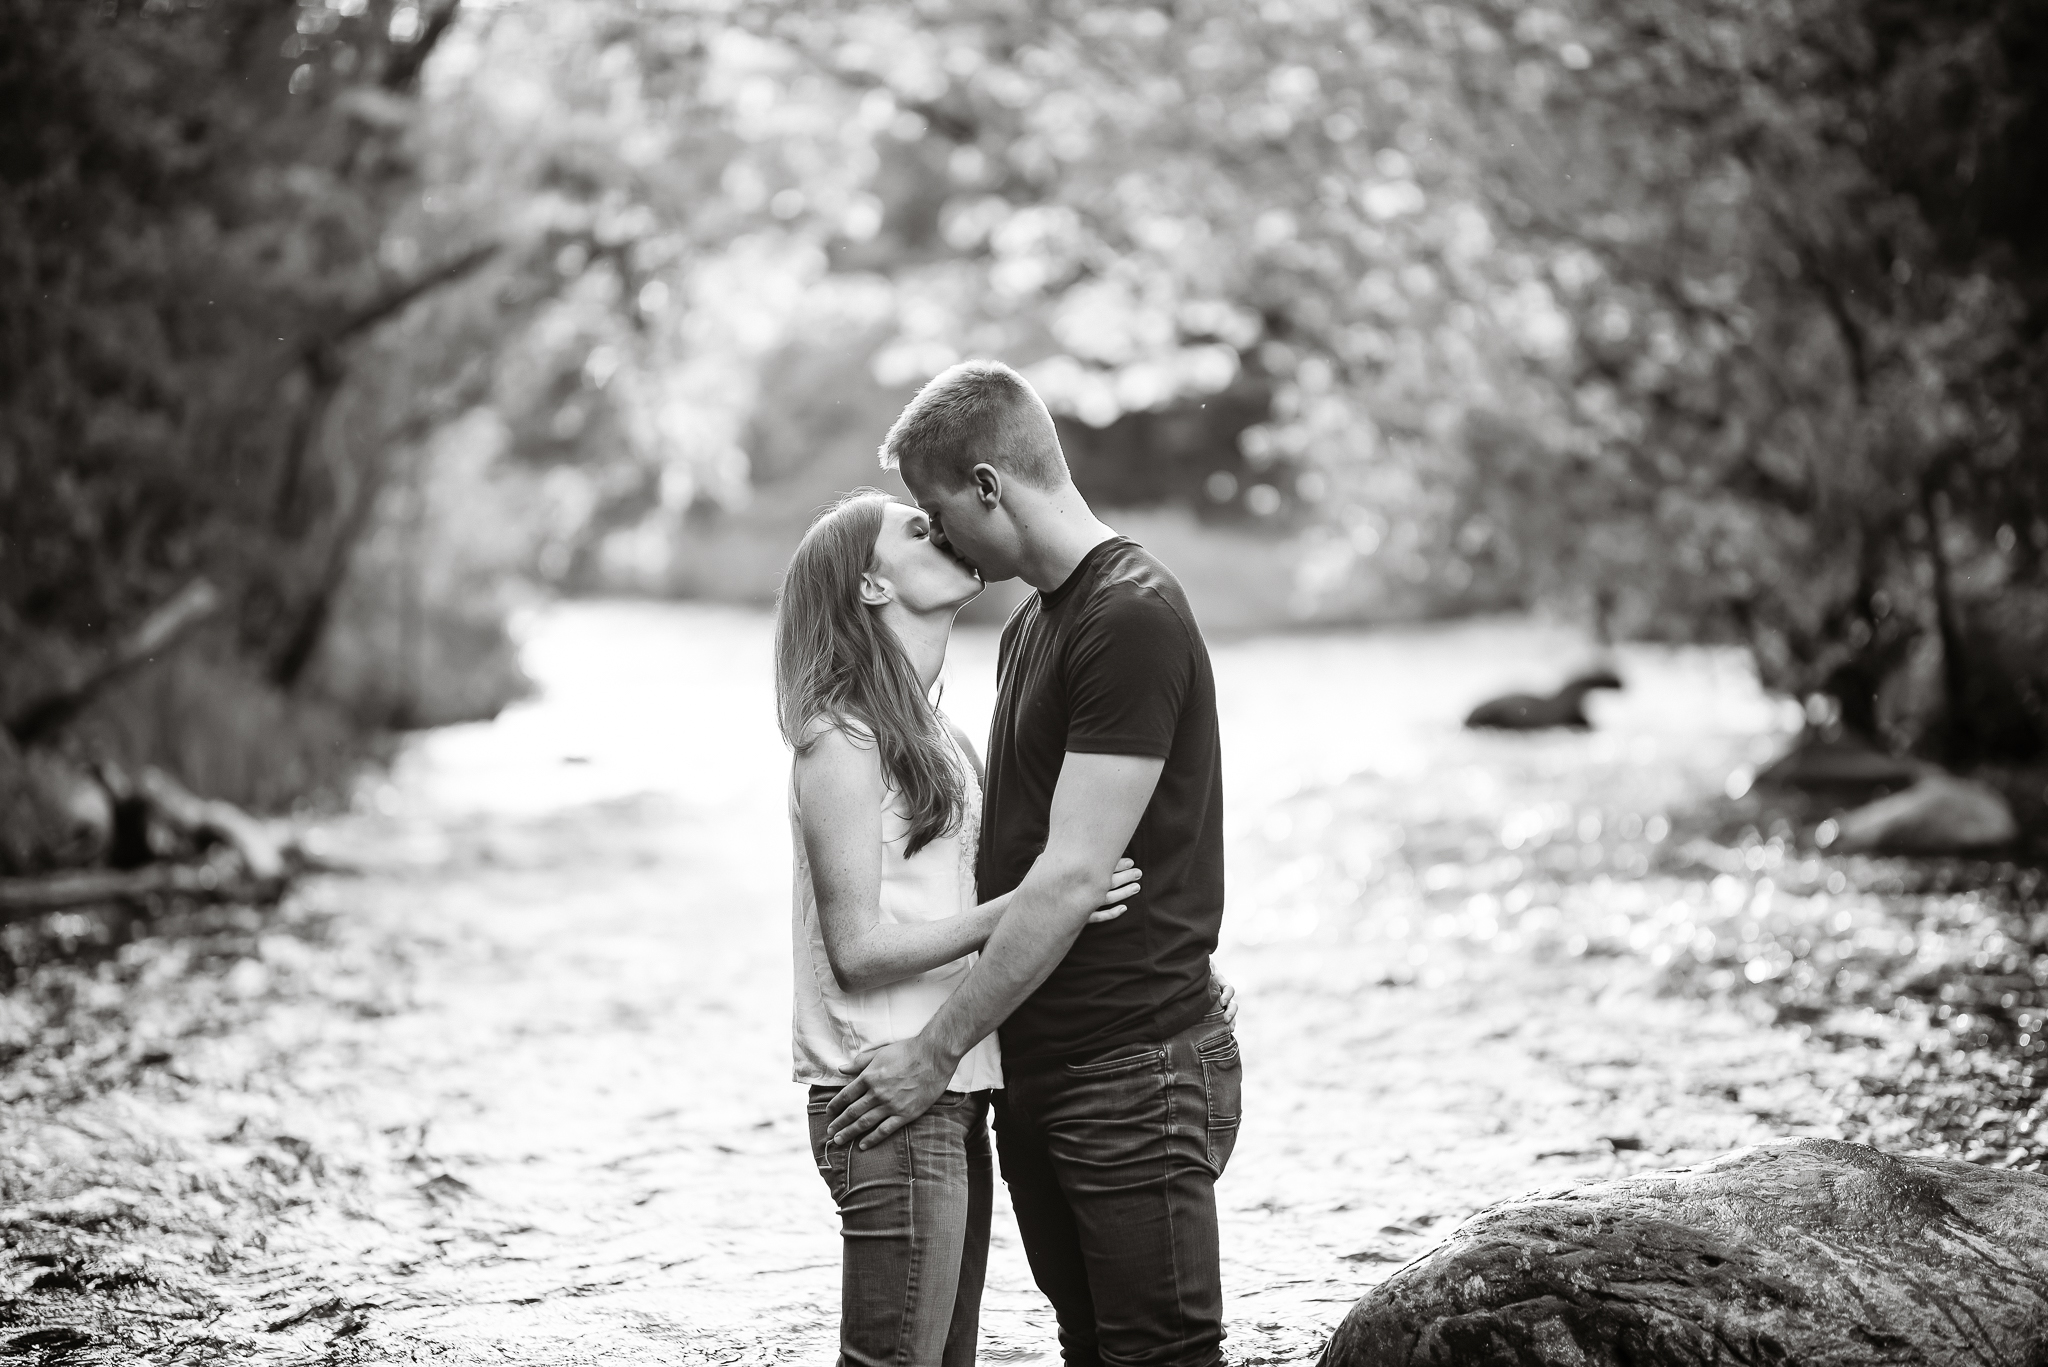 Couples405NaomiLuciennePhotography062019-Edit.jpg